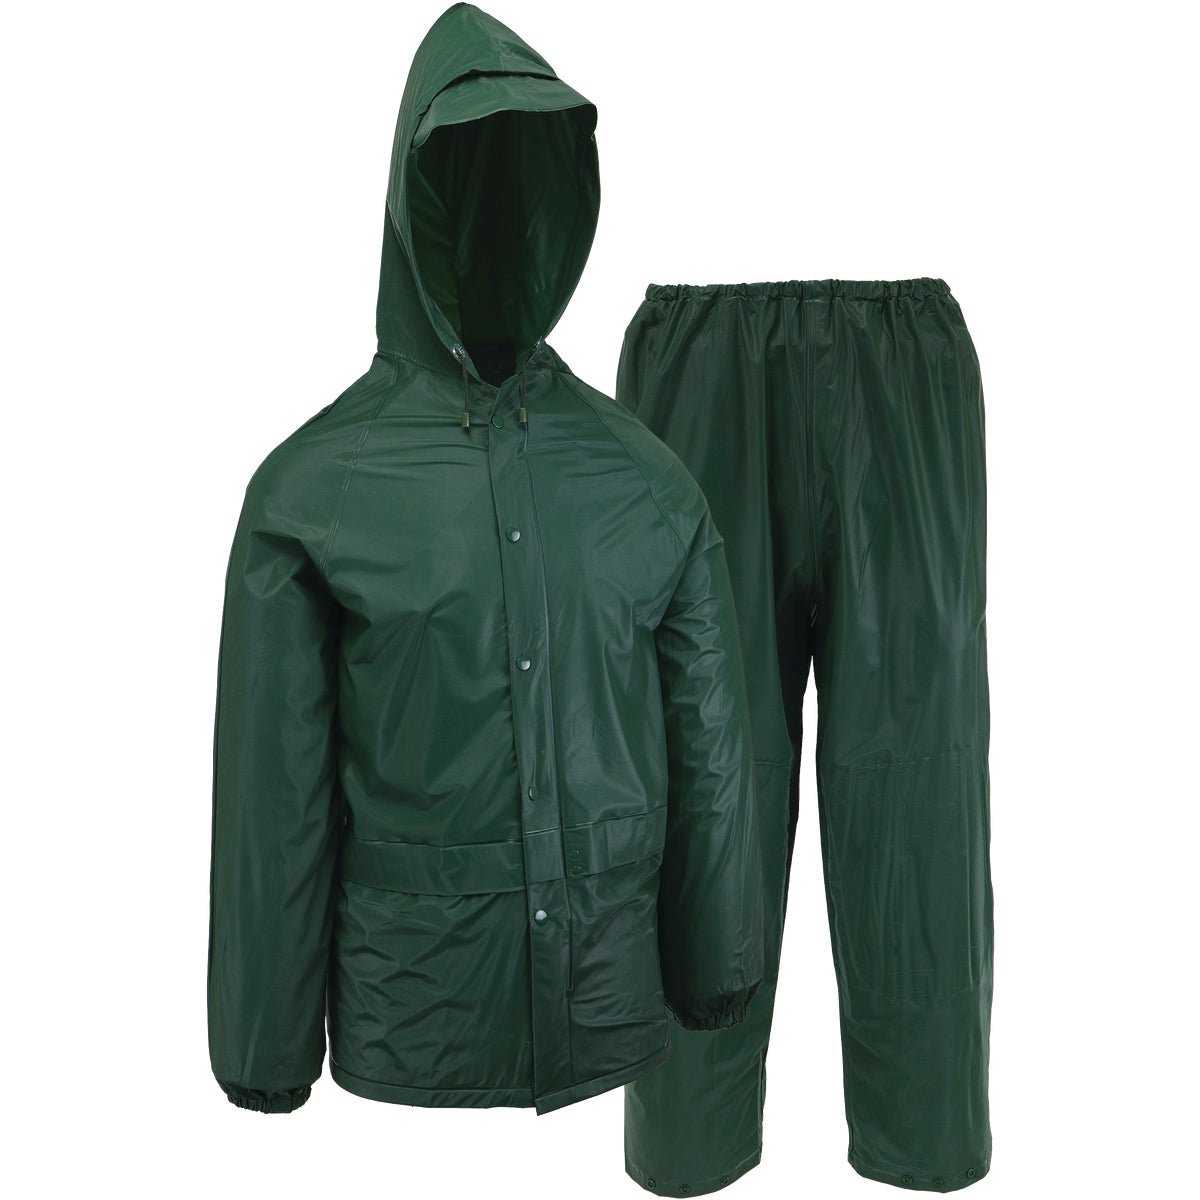 MD 35MM 3PC GRN RAINSUIT - R131M by Custom Leathercraft